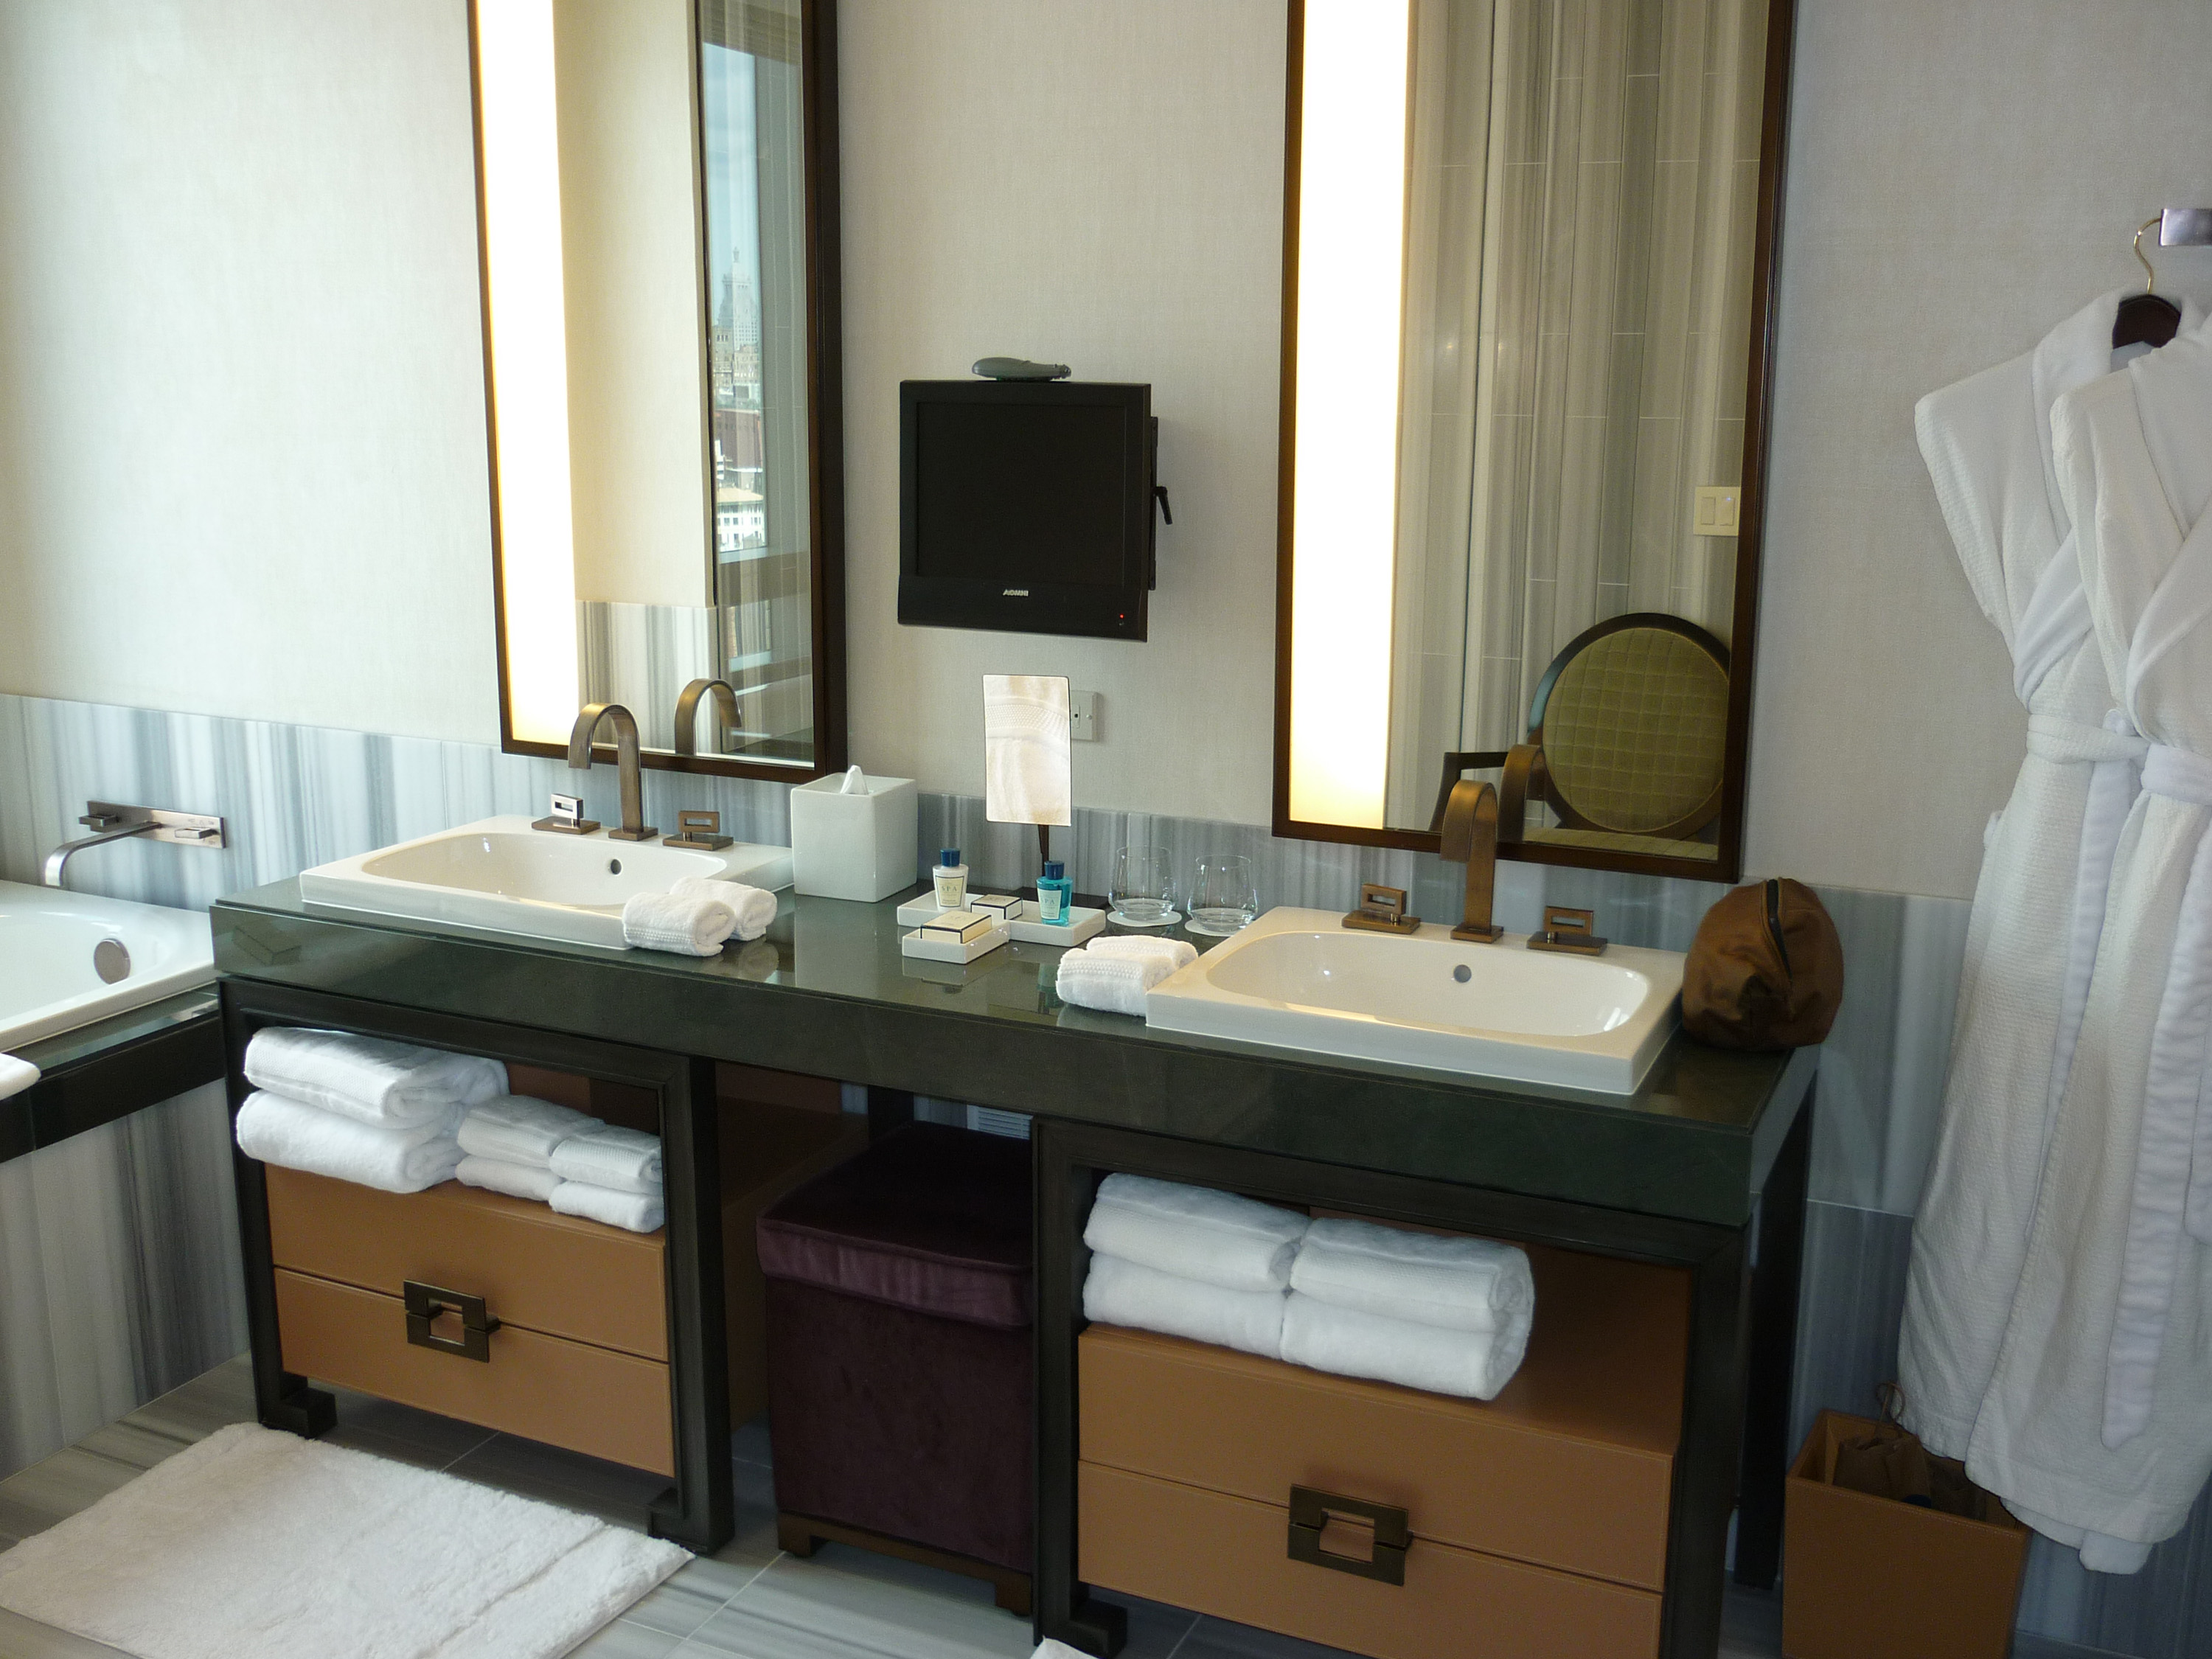 Fancy Luxury bathroom interior with a double vanity and soft fluffy white towels and a robe